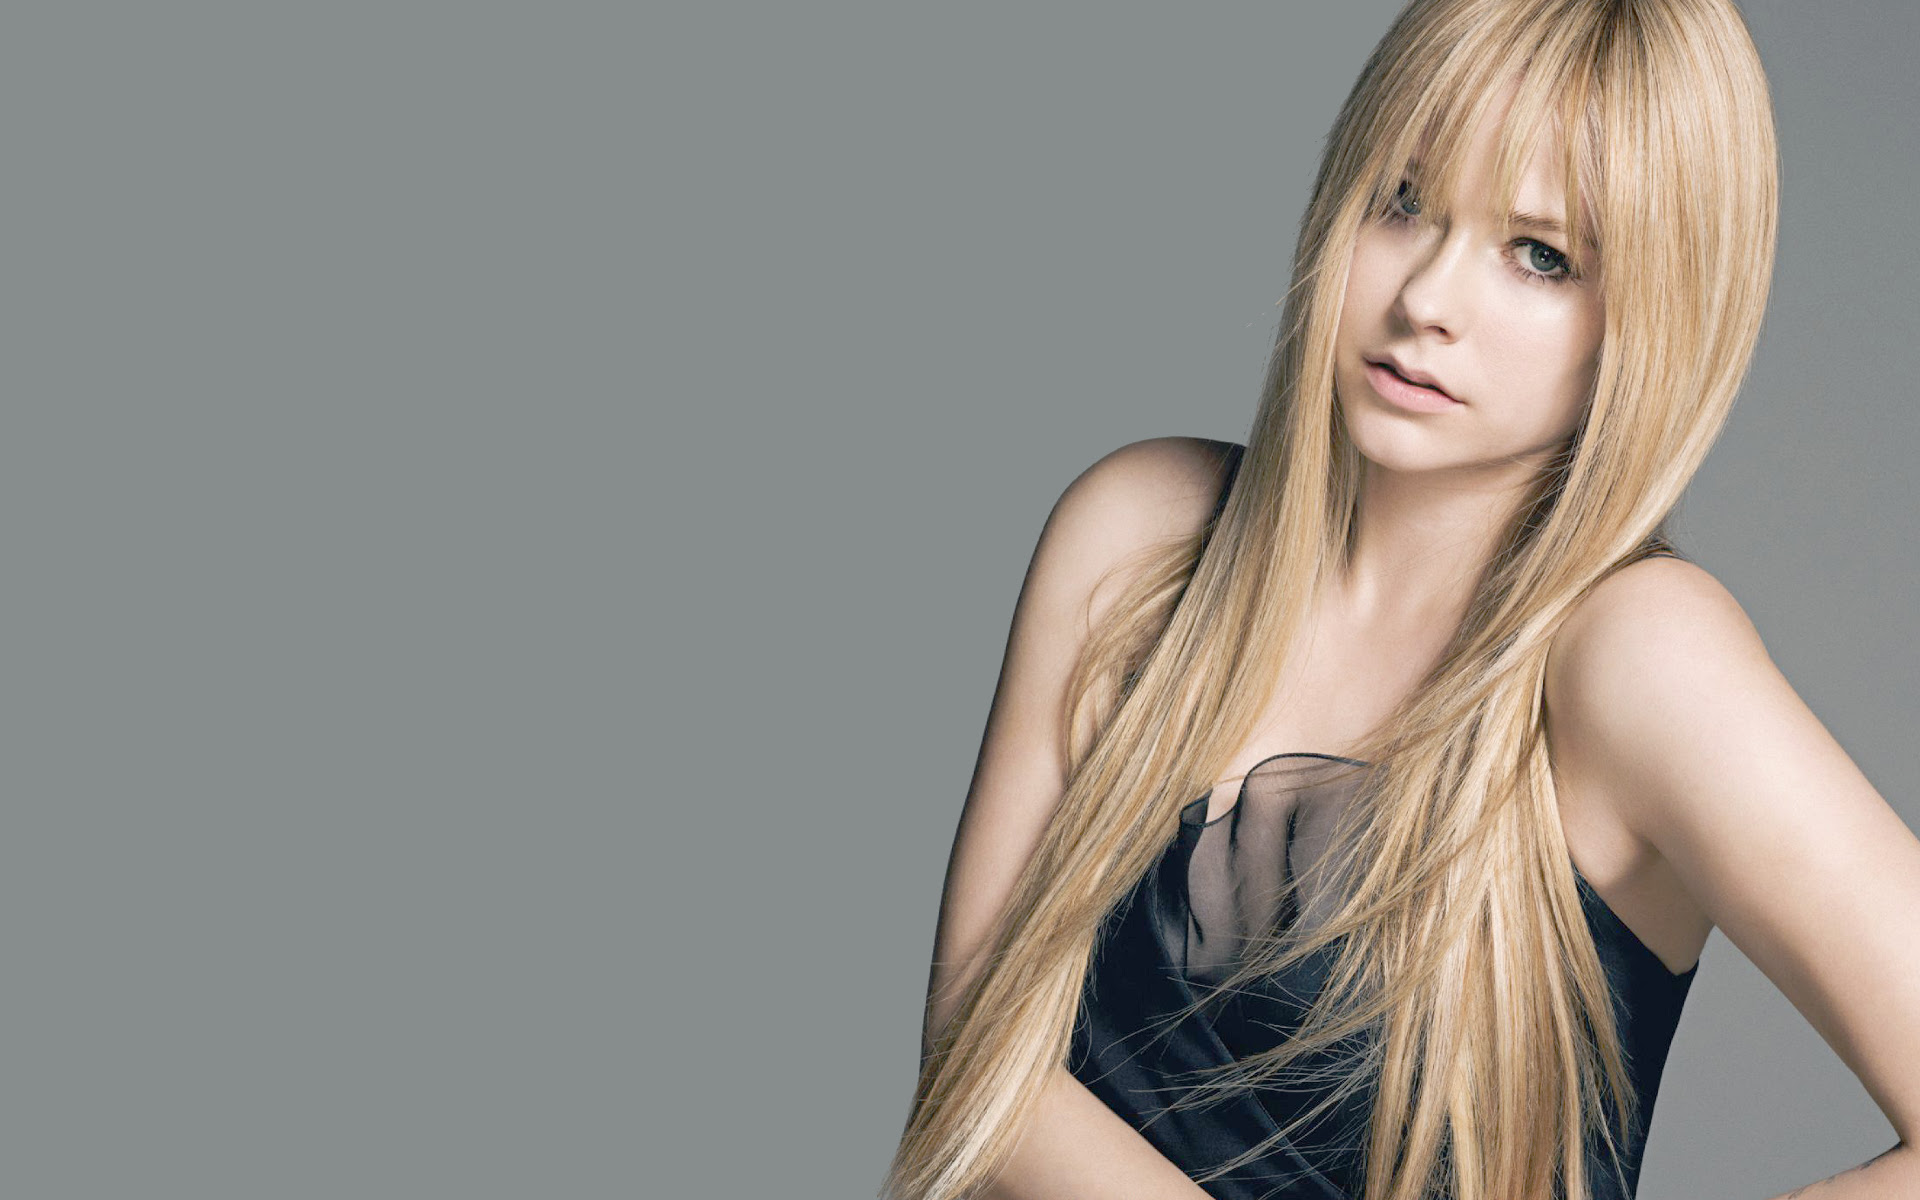 Avril Lavigne Wallpaper 1920x1200 37413